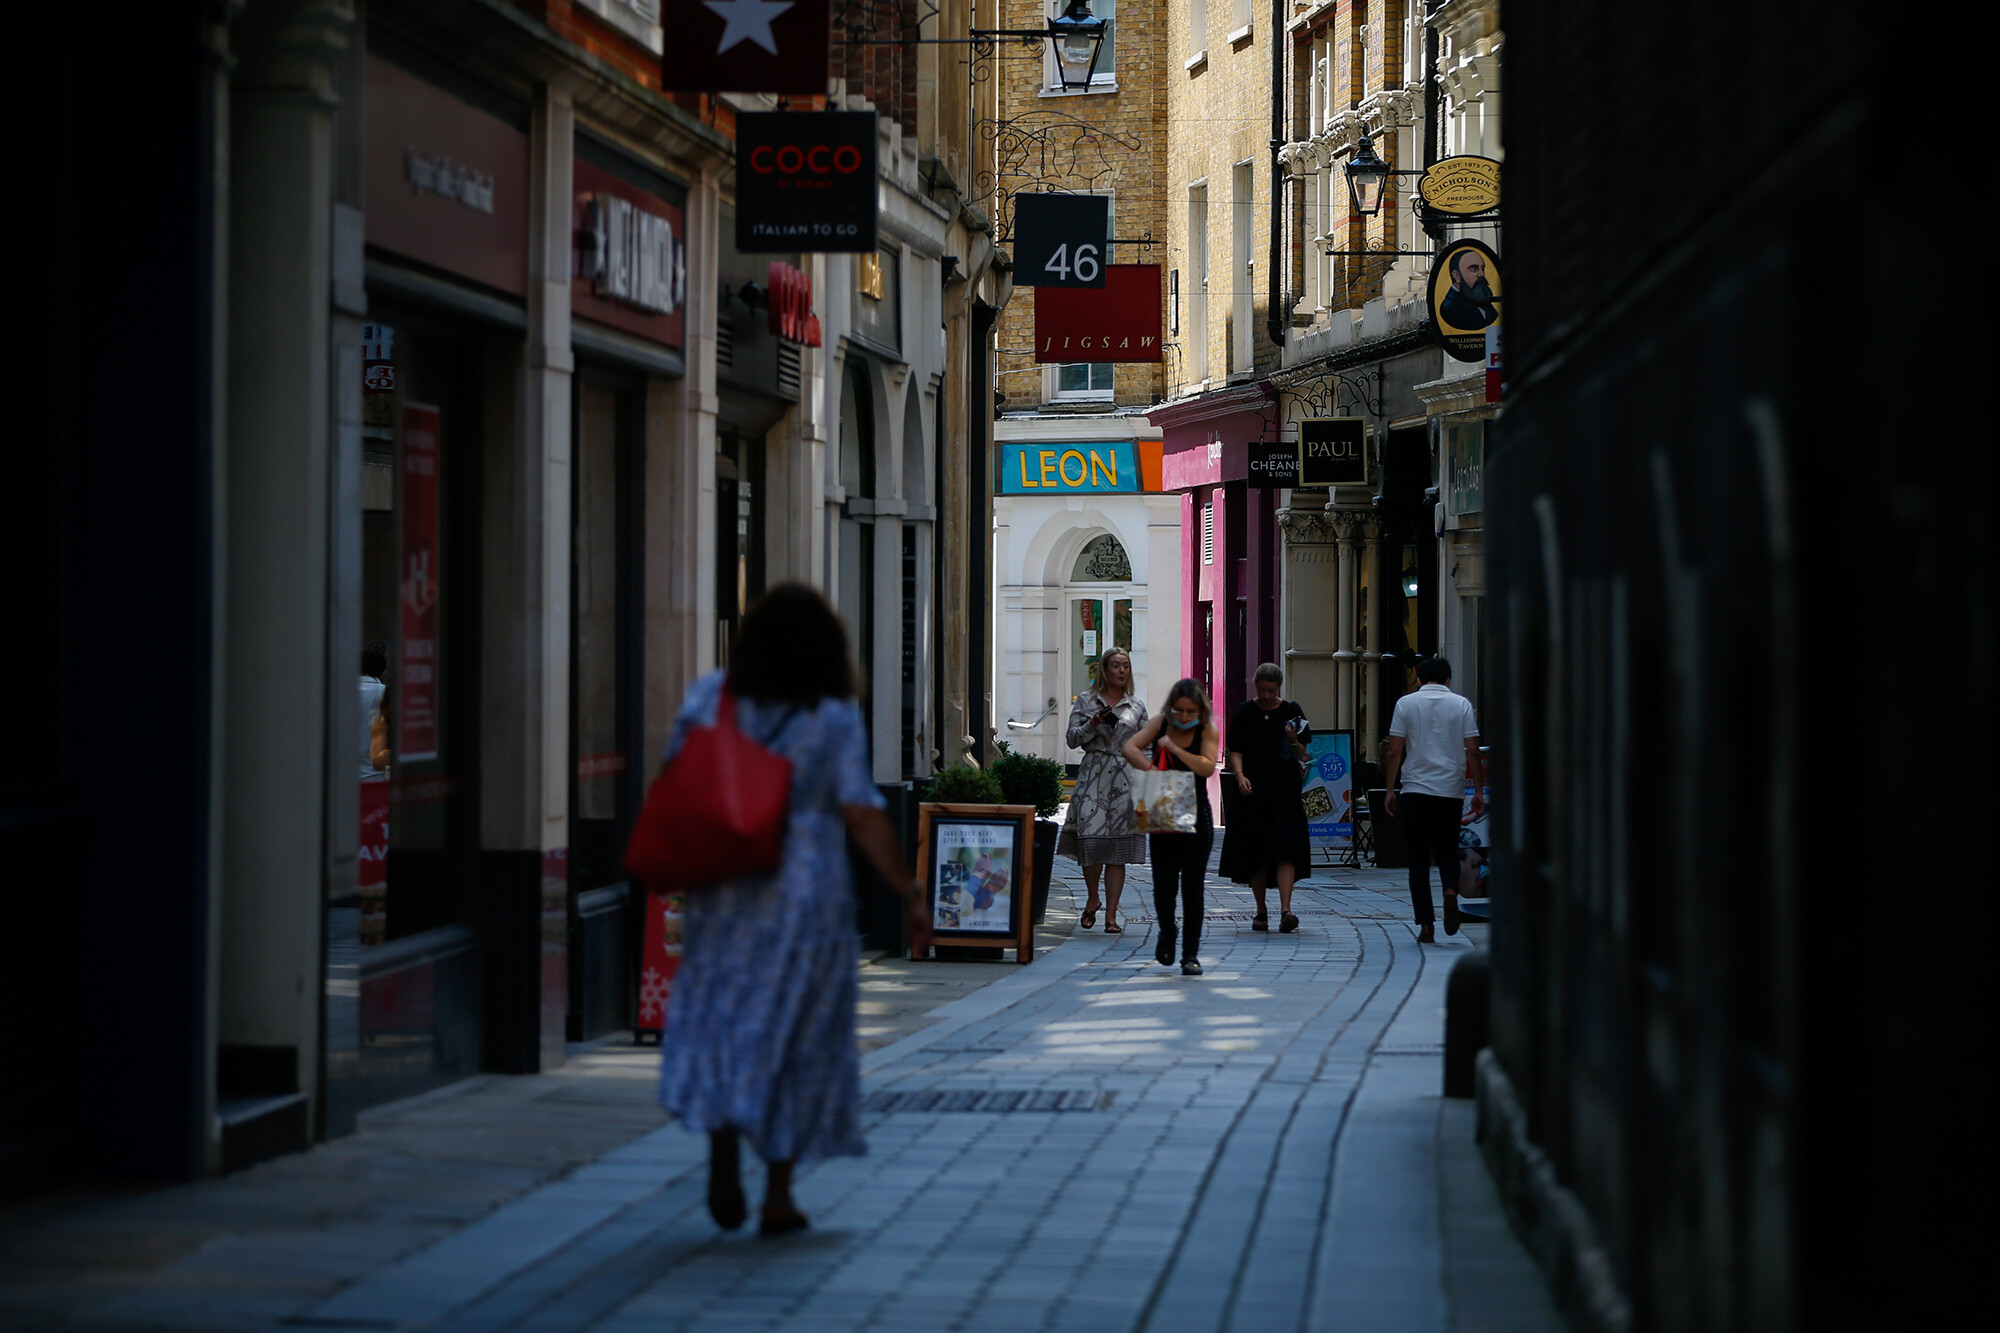 Worker shortage is forcing UK businesses to close as Covid cases spike